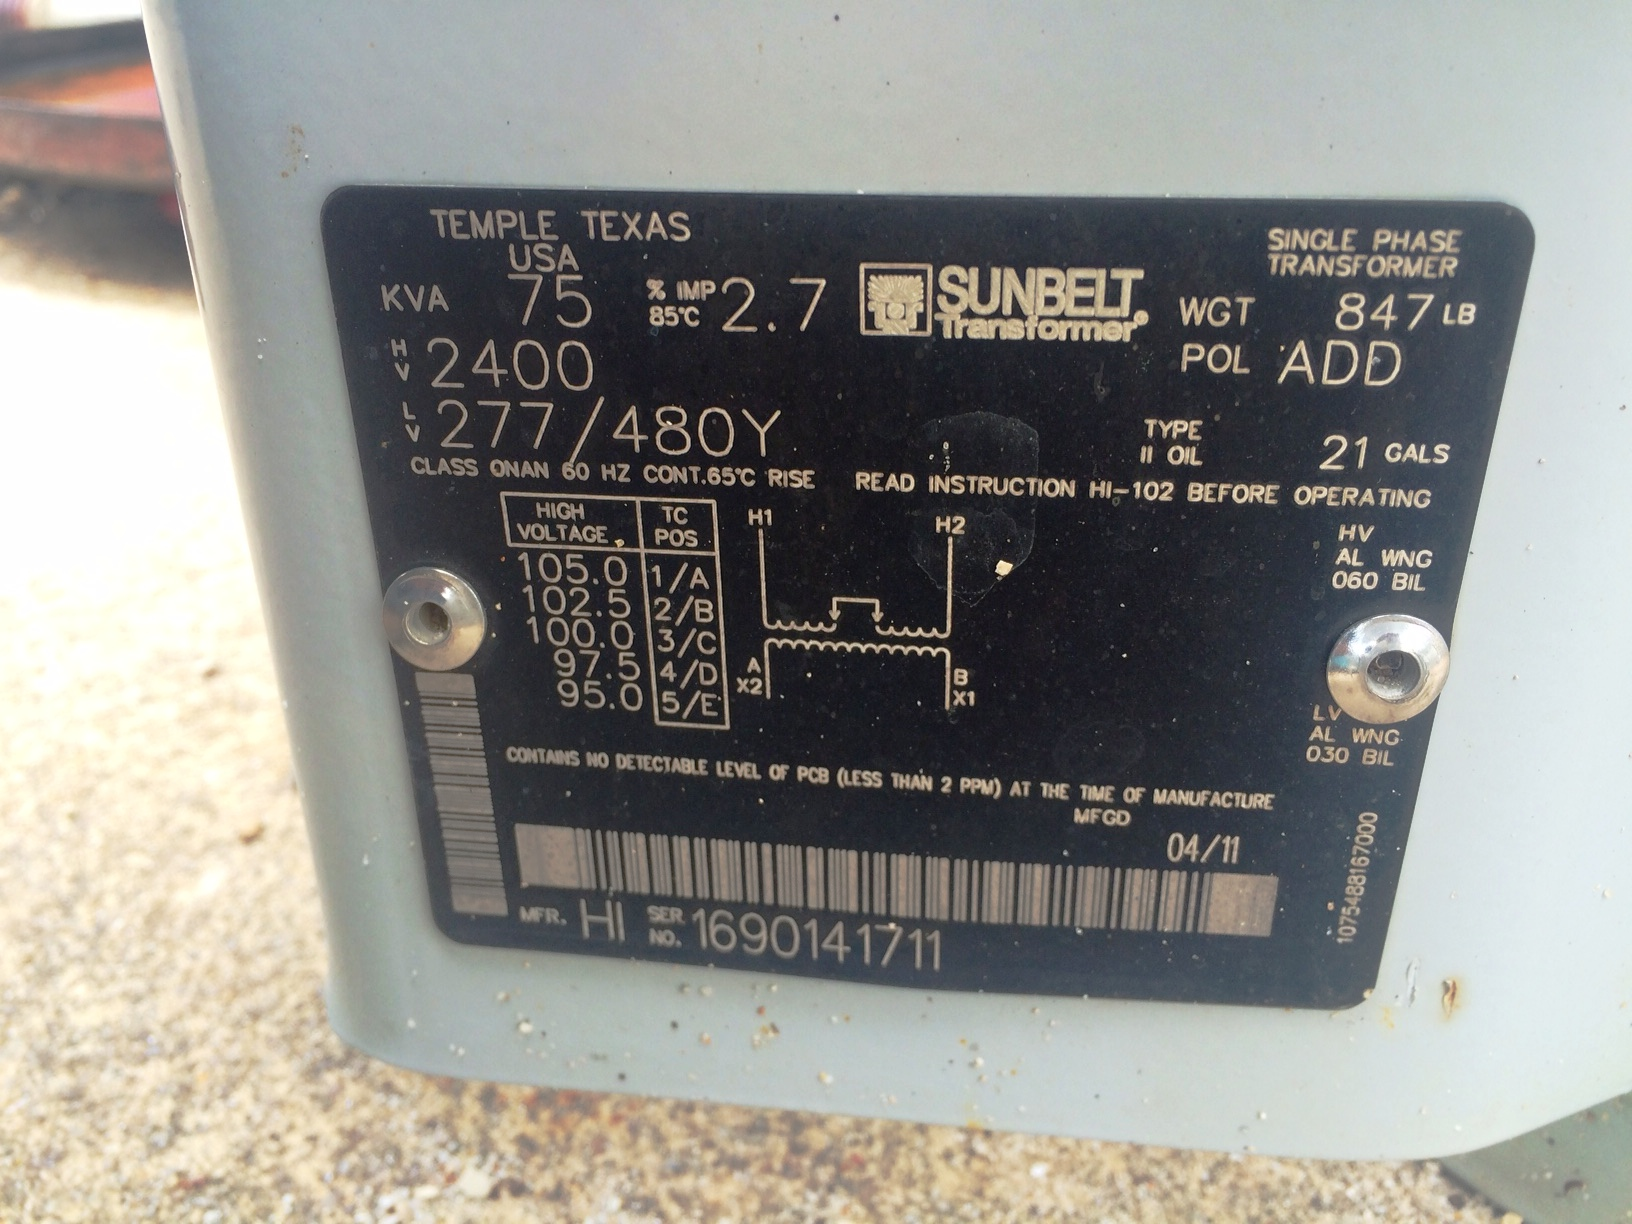 Lot 82 - Sunbelt 75 KVA Pole Mount Transformer 1 PH 2400 Volt